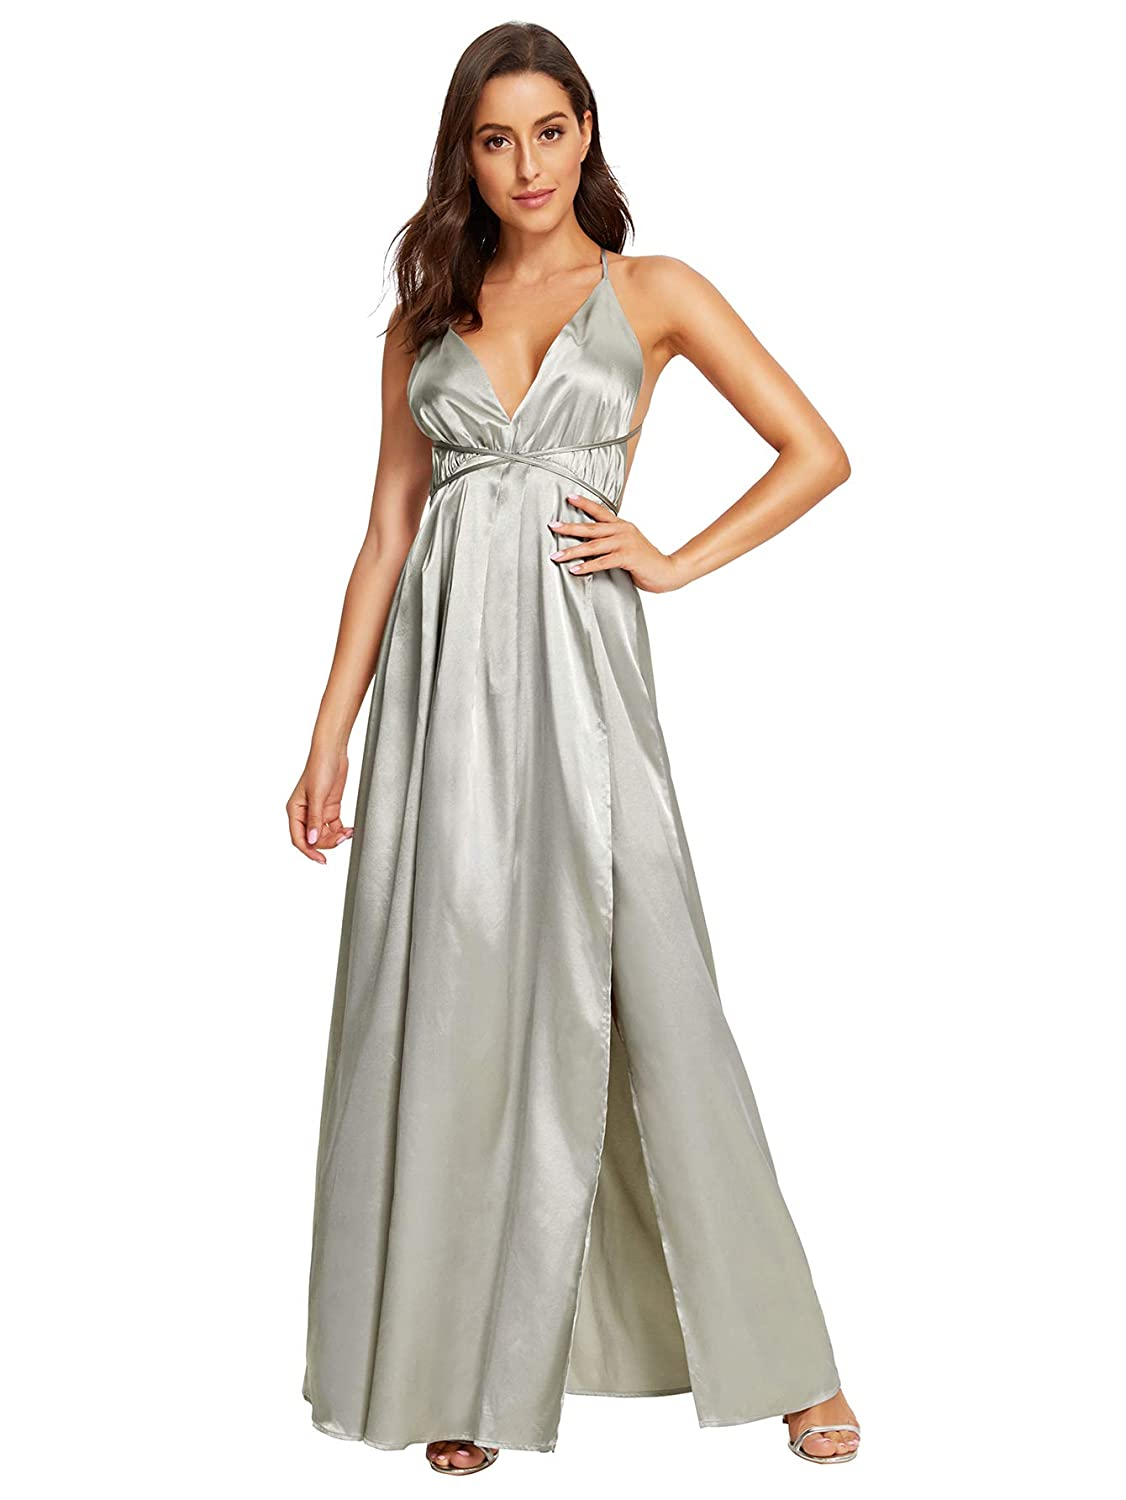 0c6824bd12 SheIn Women's Sexy Satin Deep V Neck Backless Maxi Party Evening Dress at  Amazon Women's Clothing store: